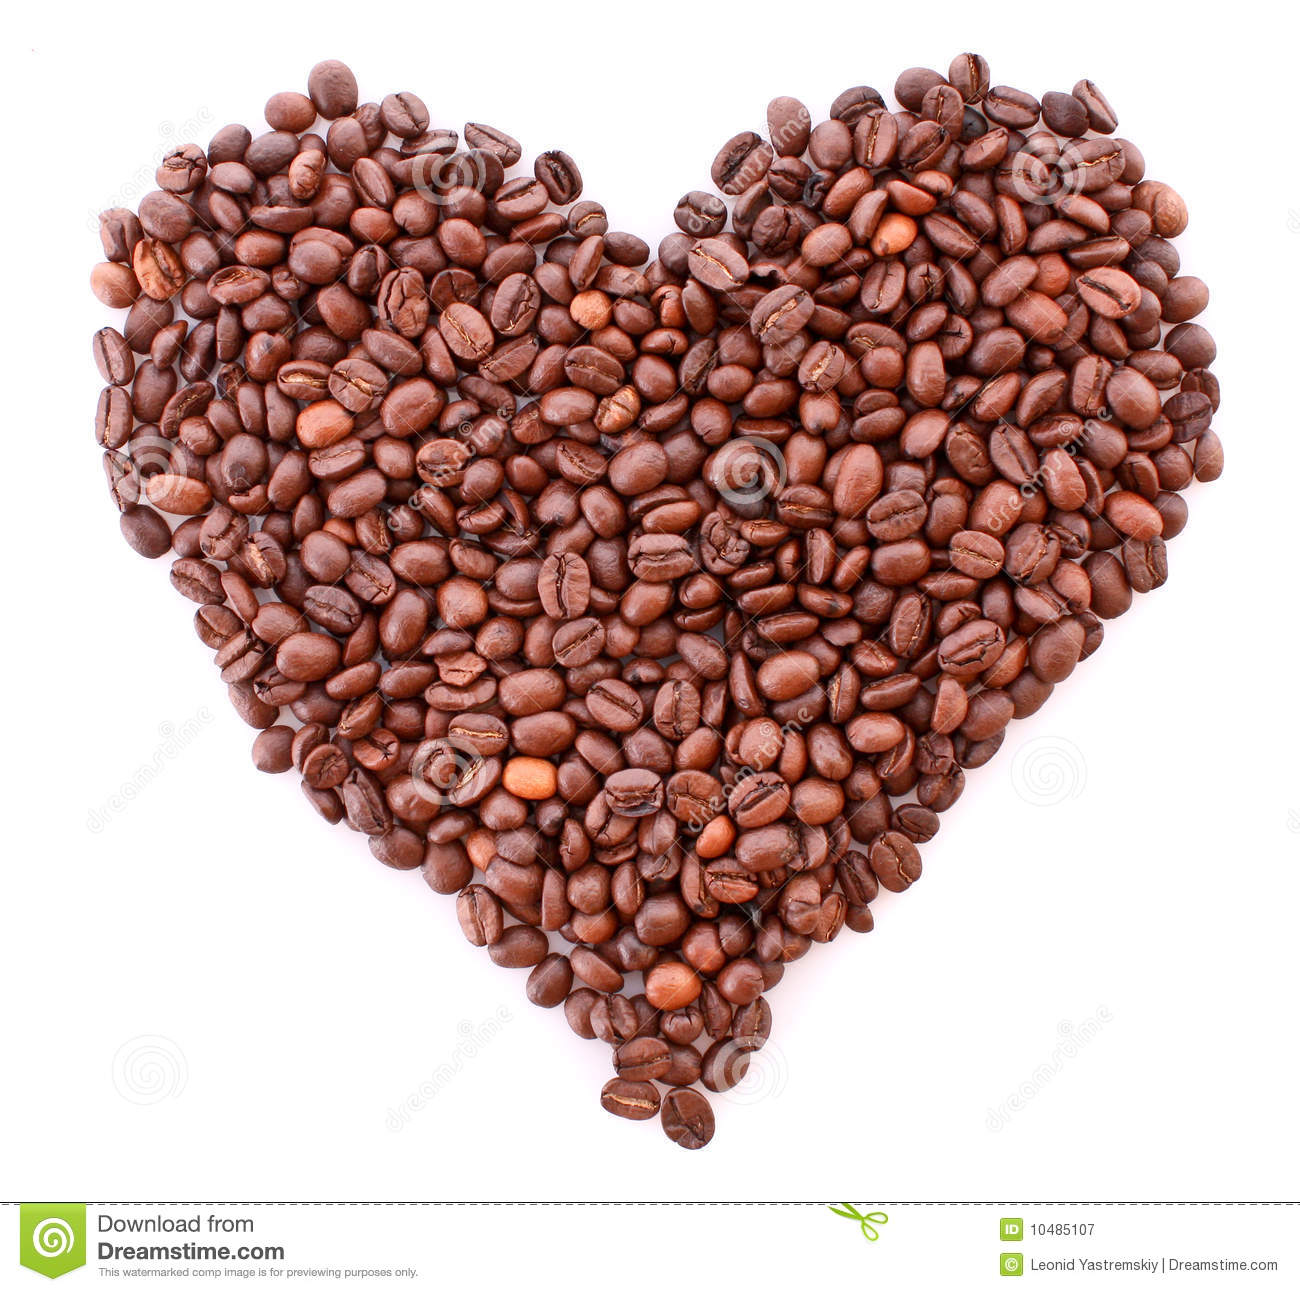 coffee bean dating site Get the skinny here on coffee nutrition facts and  regular coffee nutrition facts: coffee is a centuries-old  dating back to the 15th century where it.